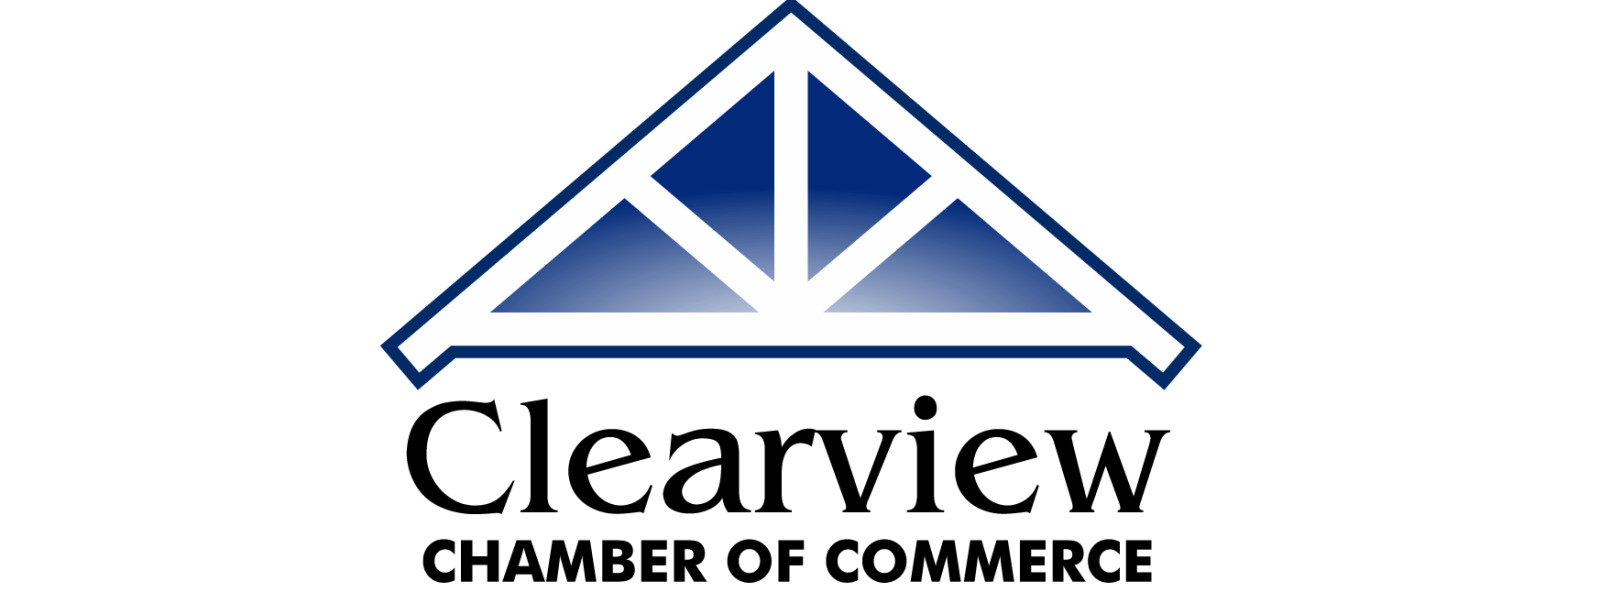 Clearview Chamber of Commerce